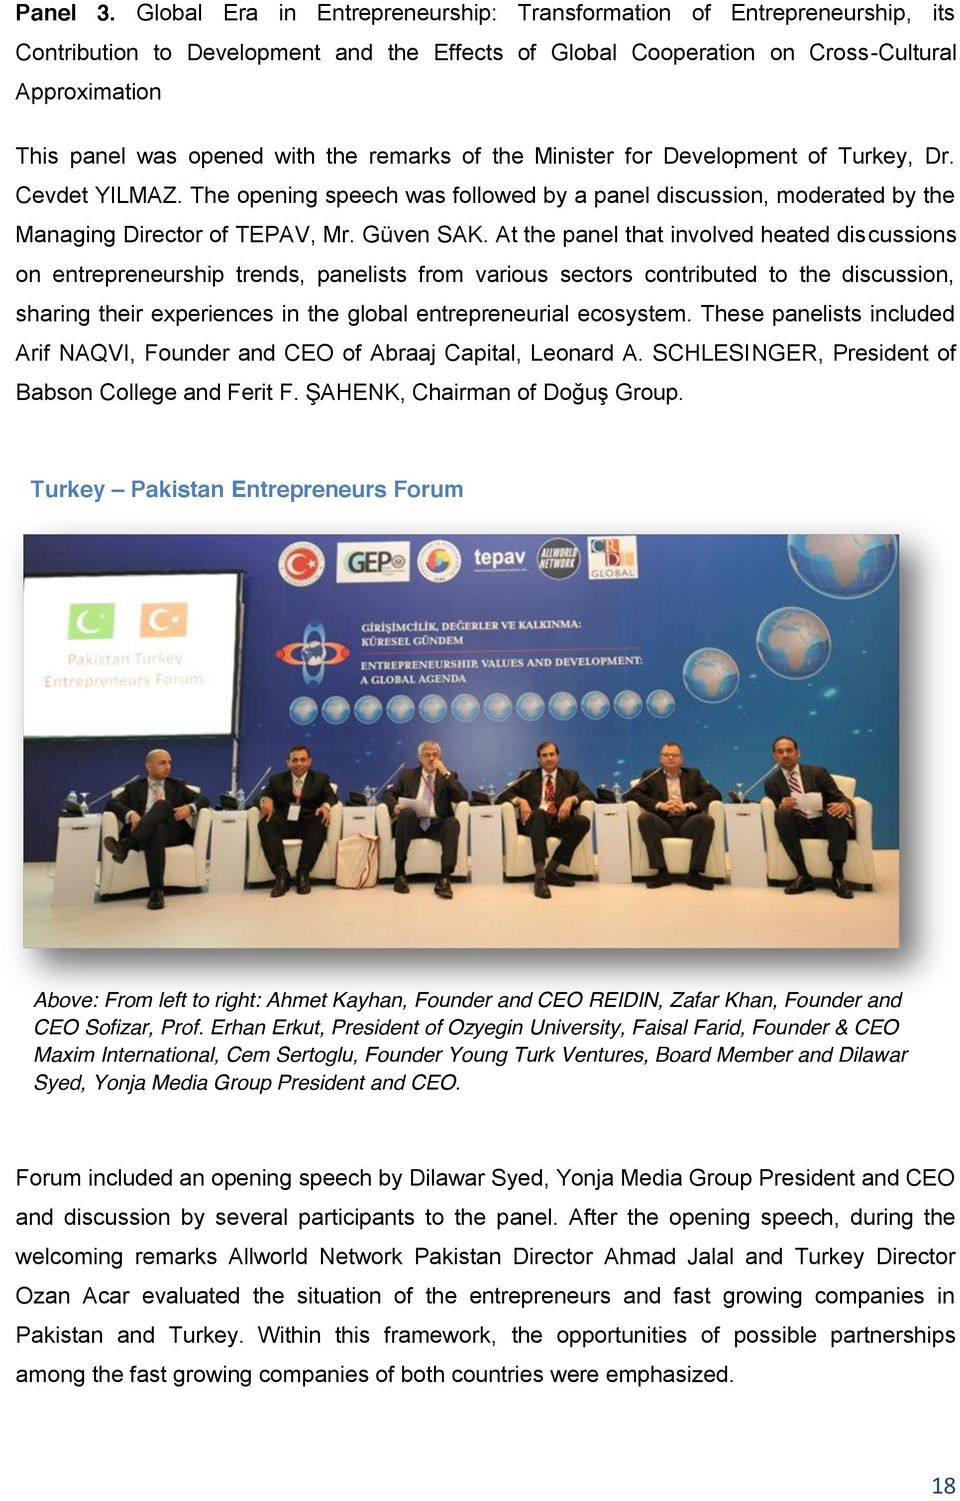 the remarks of the Minister for Development of Turkey, Dr. Cevdet YILMAZ. The opening speech was followed by a panel discussion, moderated by the Managing Director of TEPAV, Mr. Güven SAK.